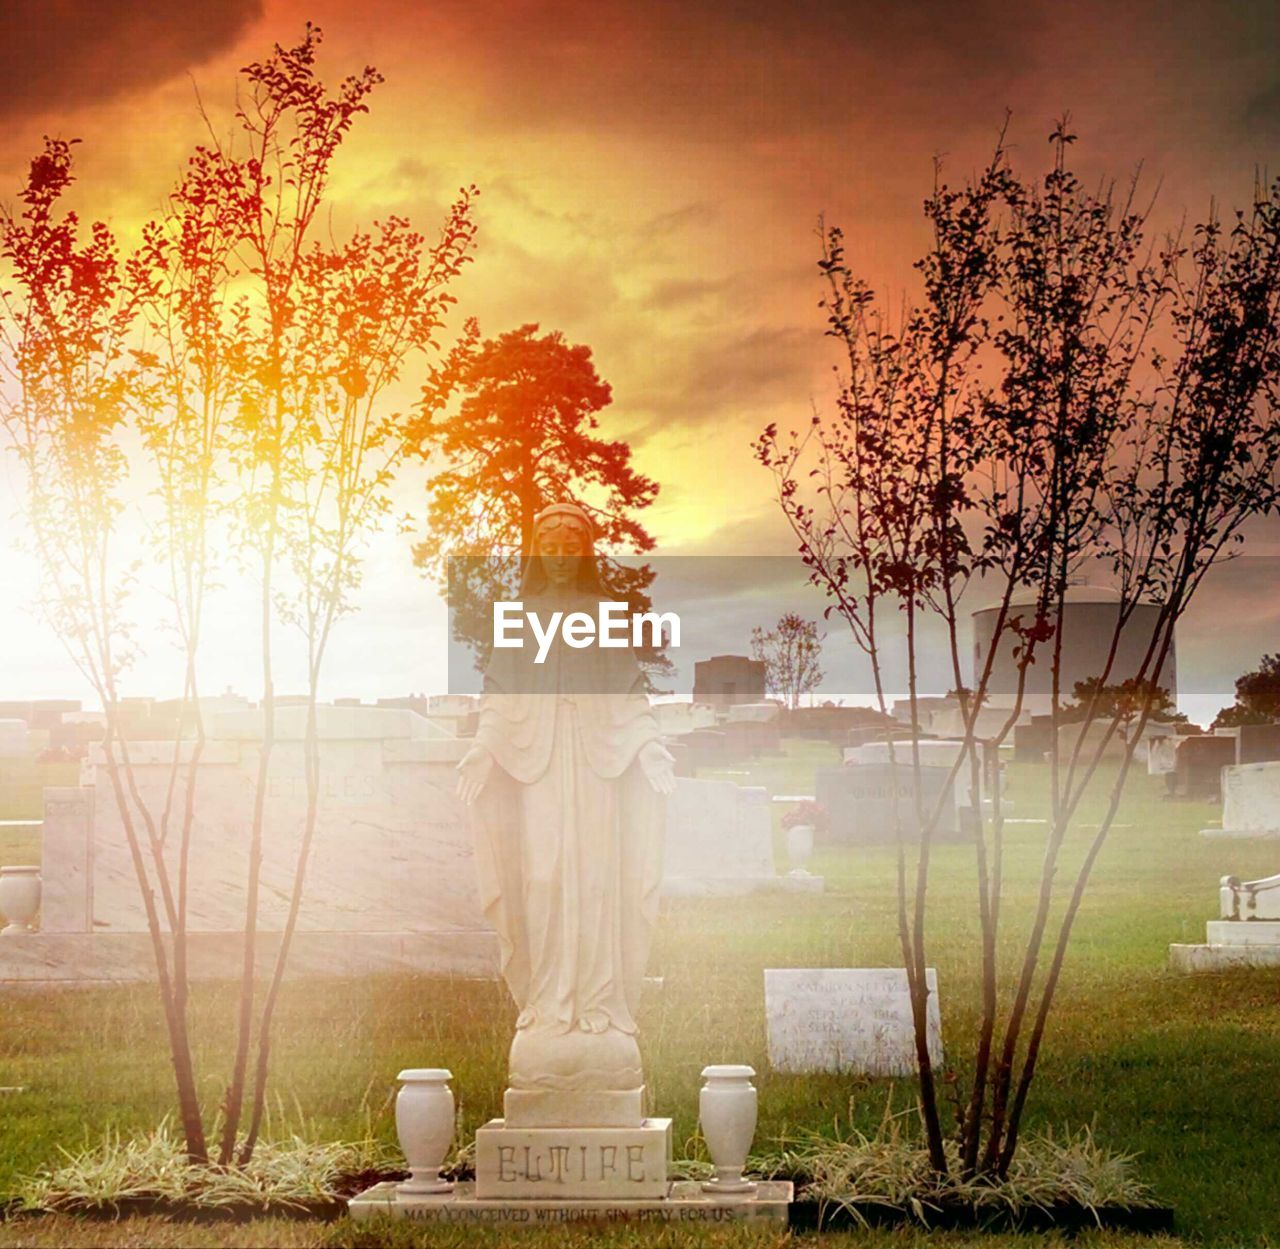 tree, no people, statue, sky, sculpture, grass, sunset, nature, outdoors, day